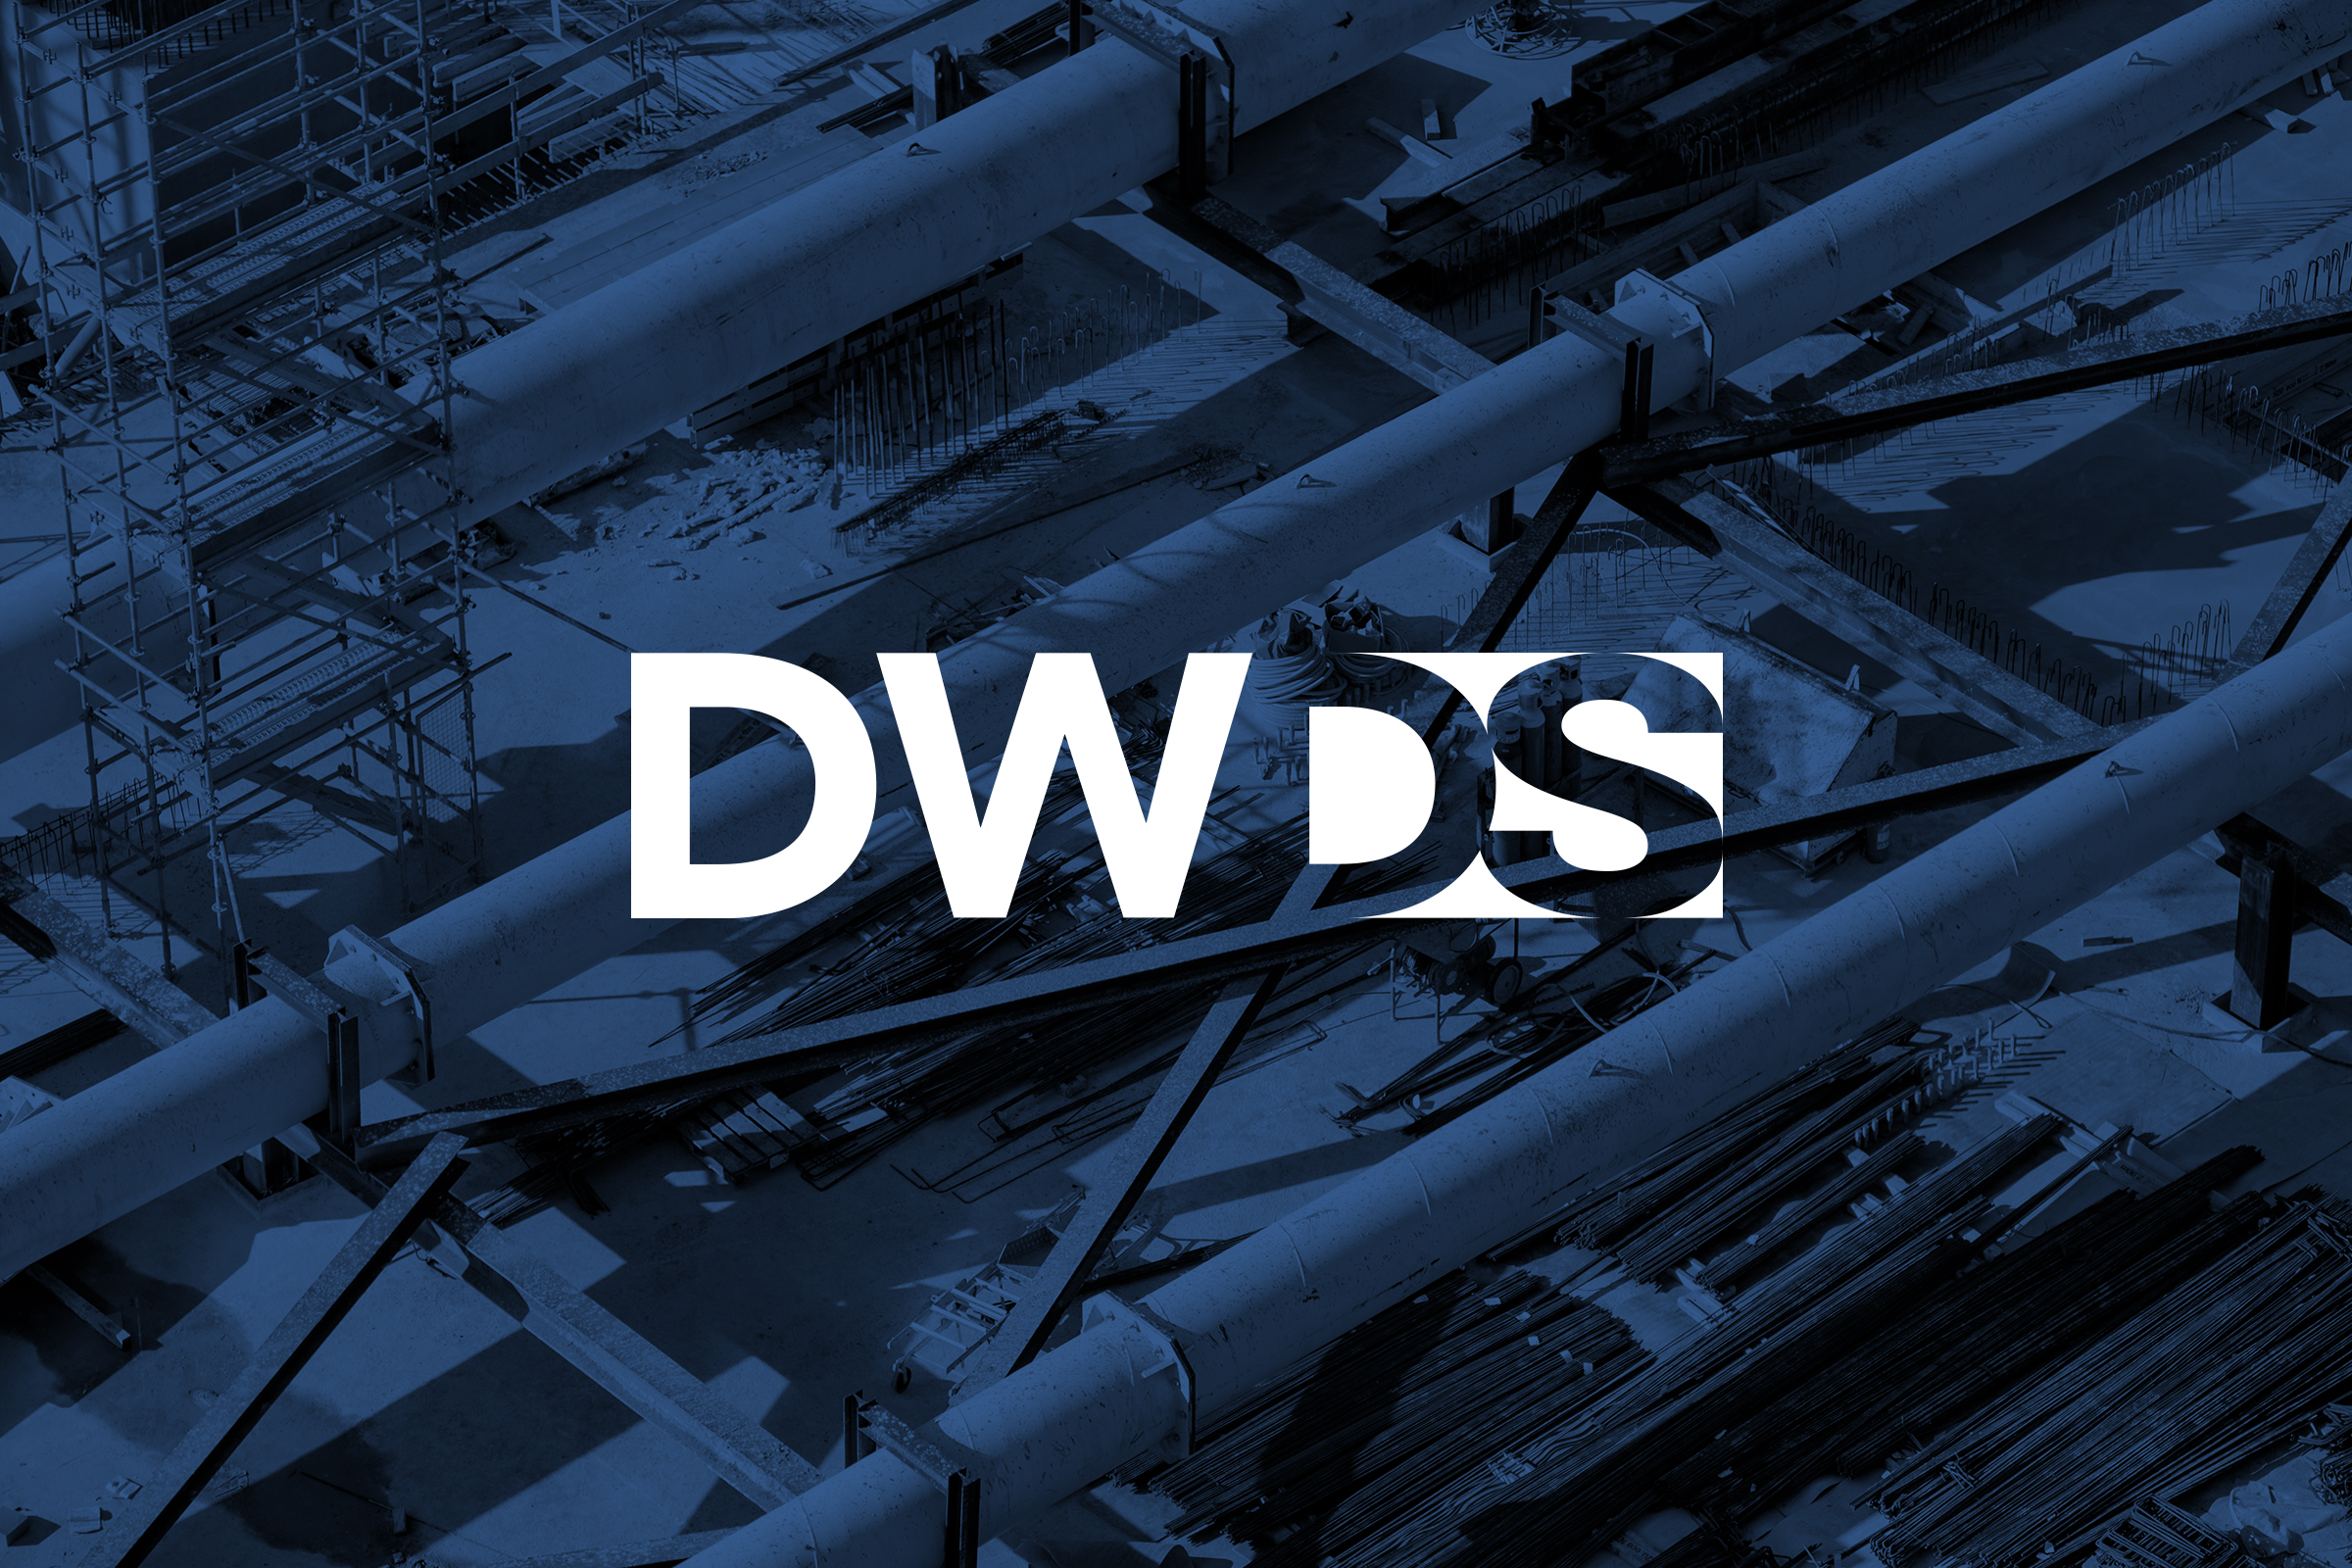 Cover image: DWDS